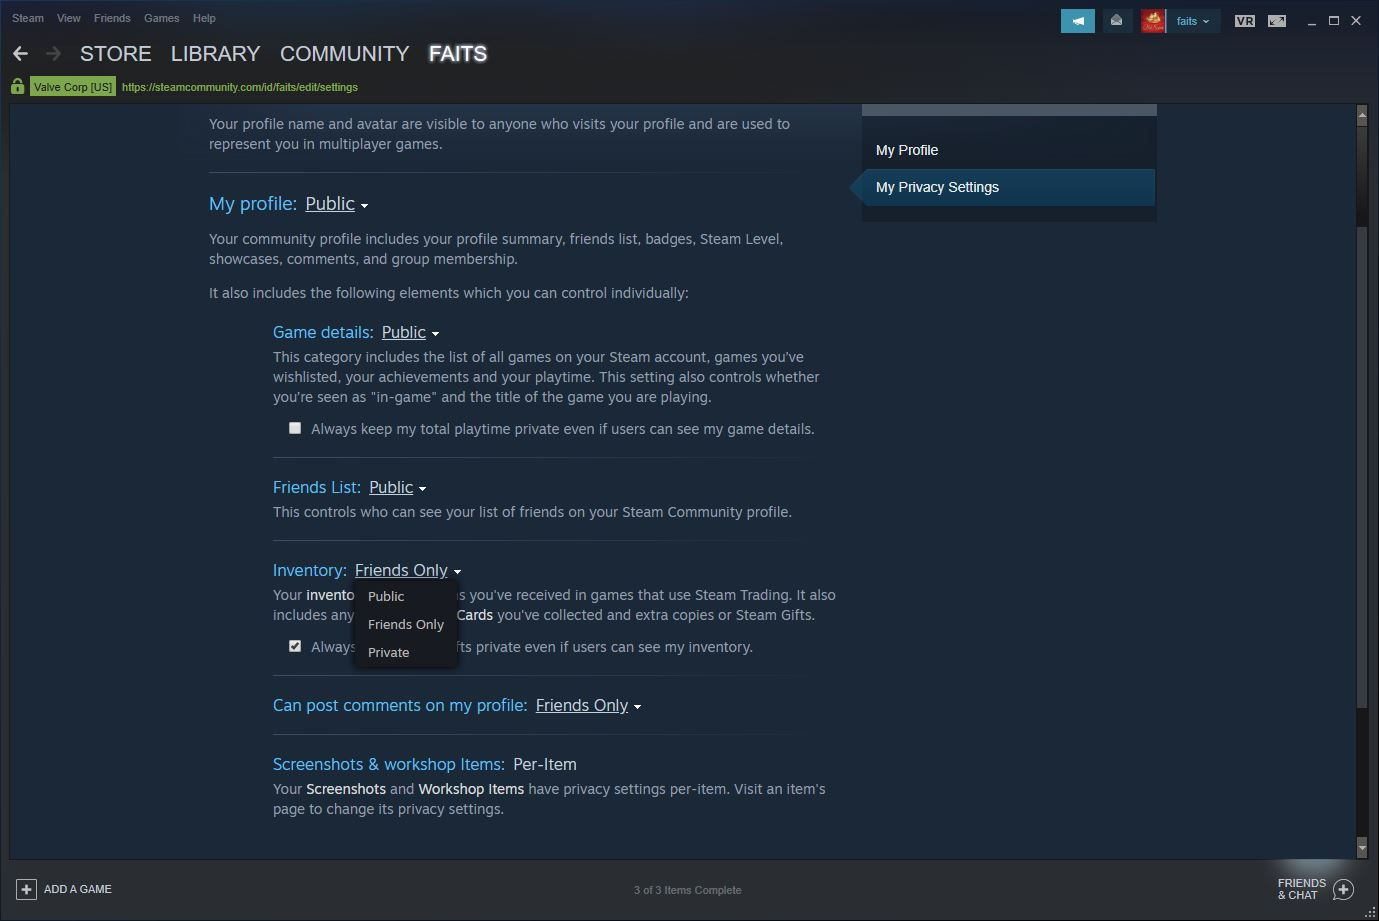 A screenshot of the Steam privacy settings options.